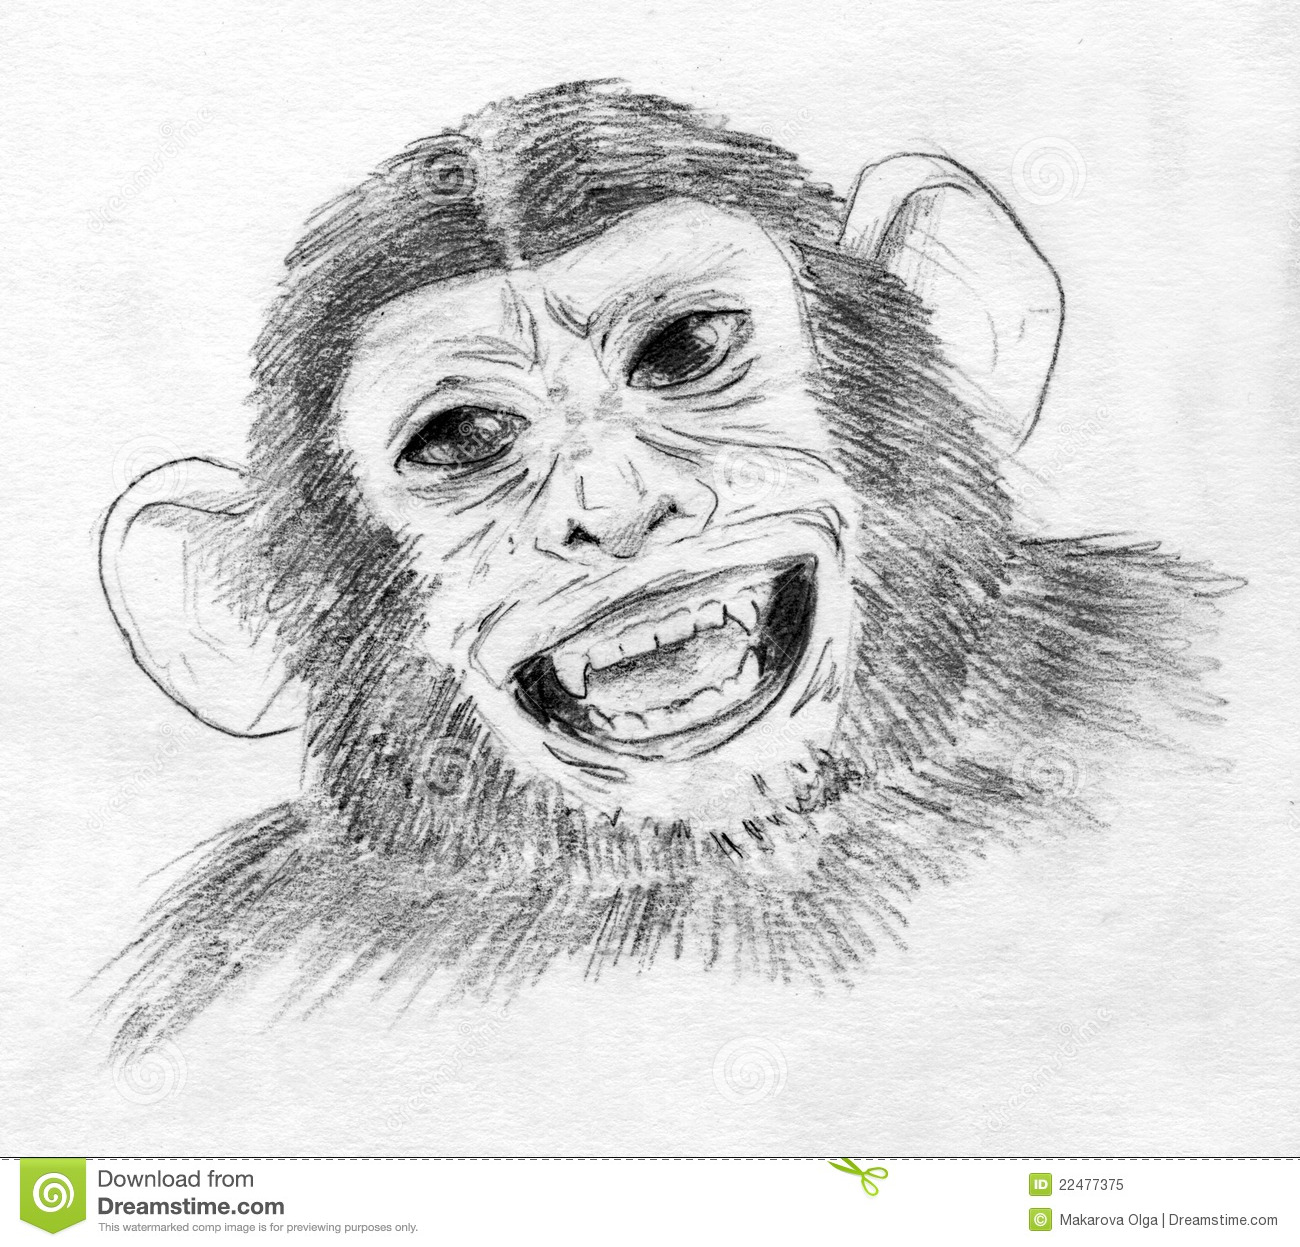 Laughing Chimp Royalty Free Stock Photo - Image: 22477375 - photo#24